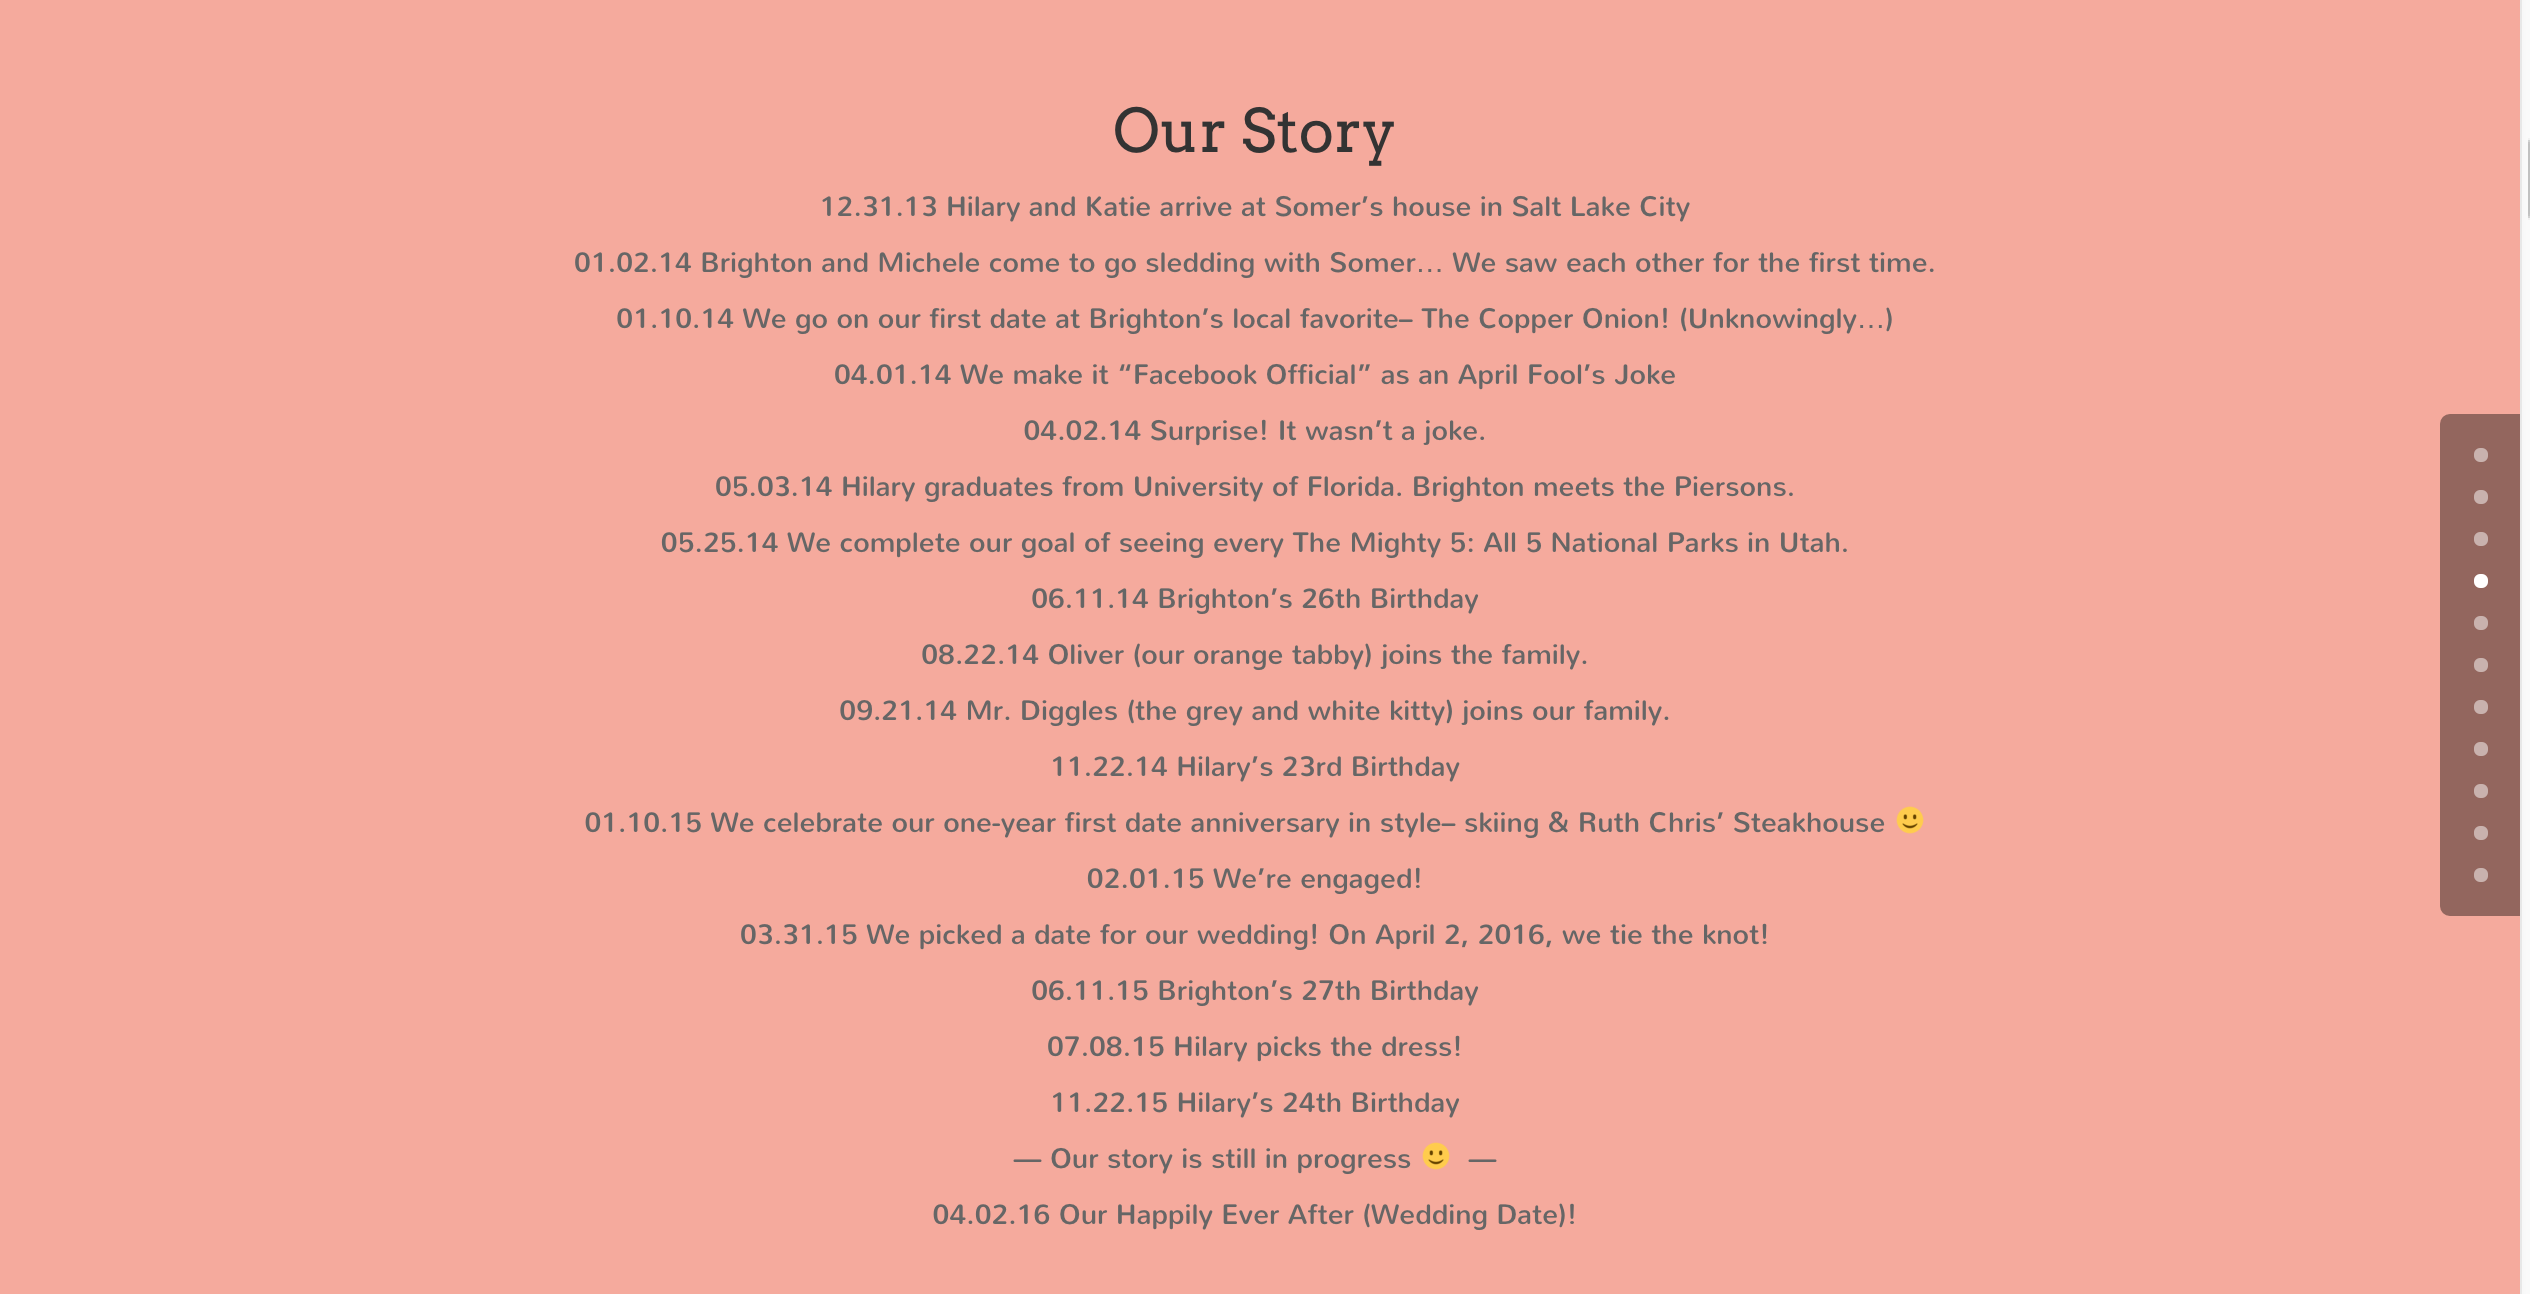 Our Story - Wedding Story